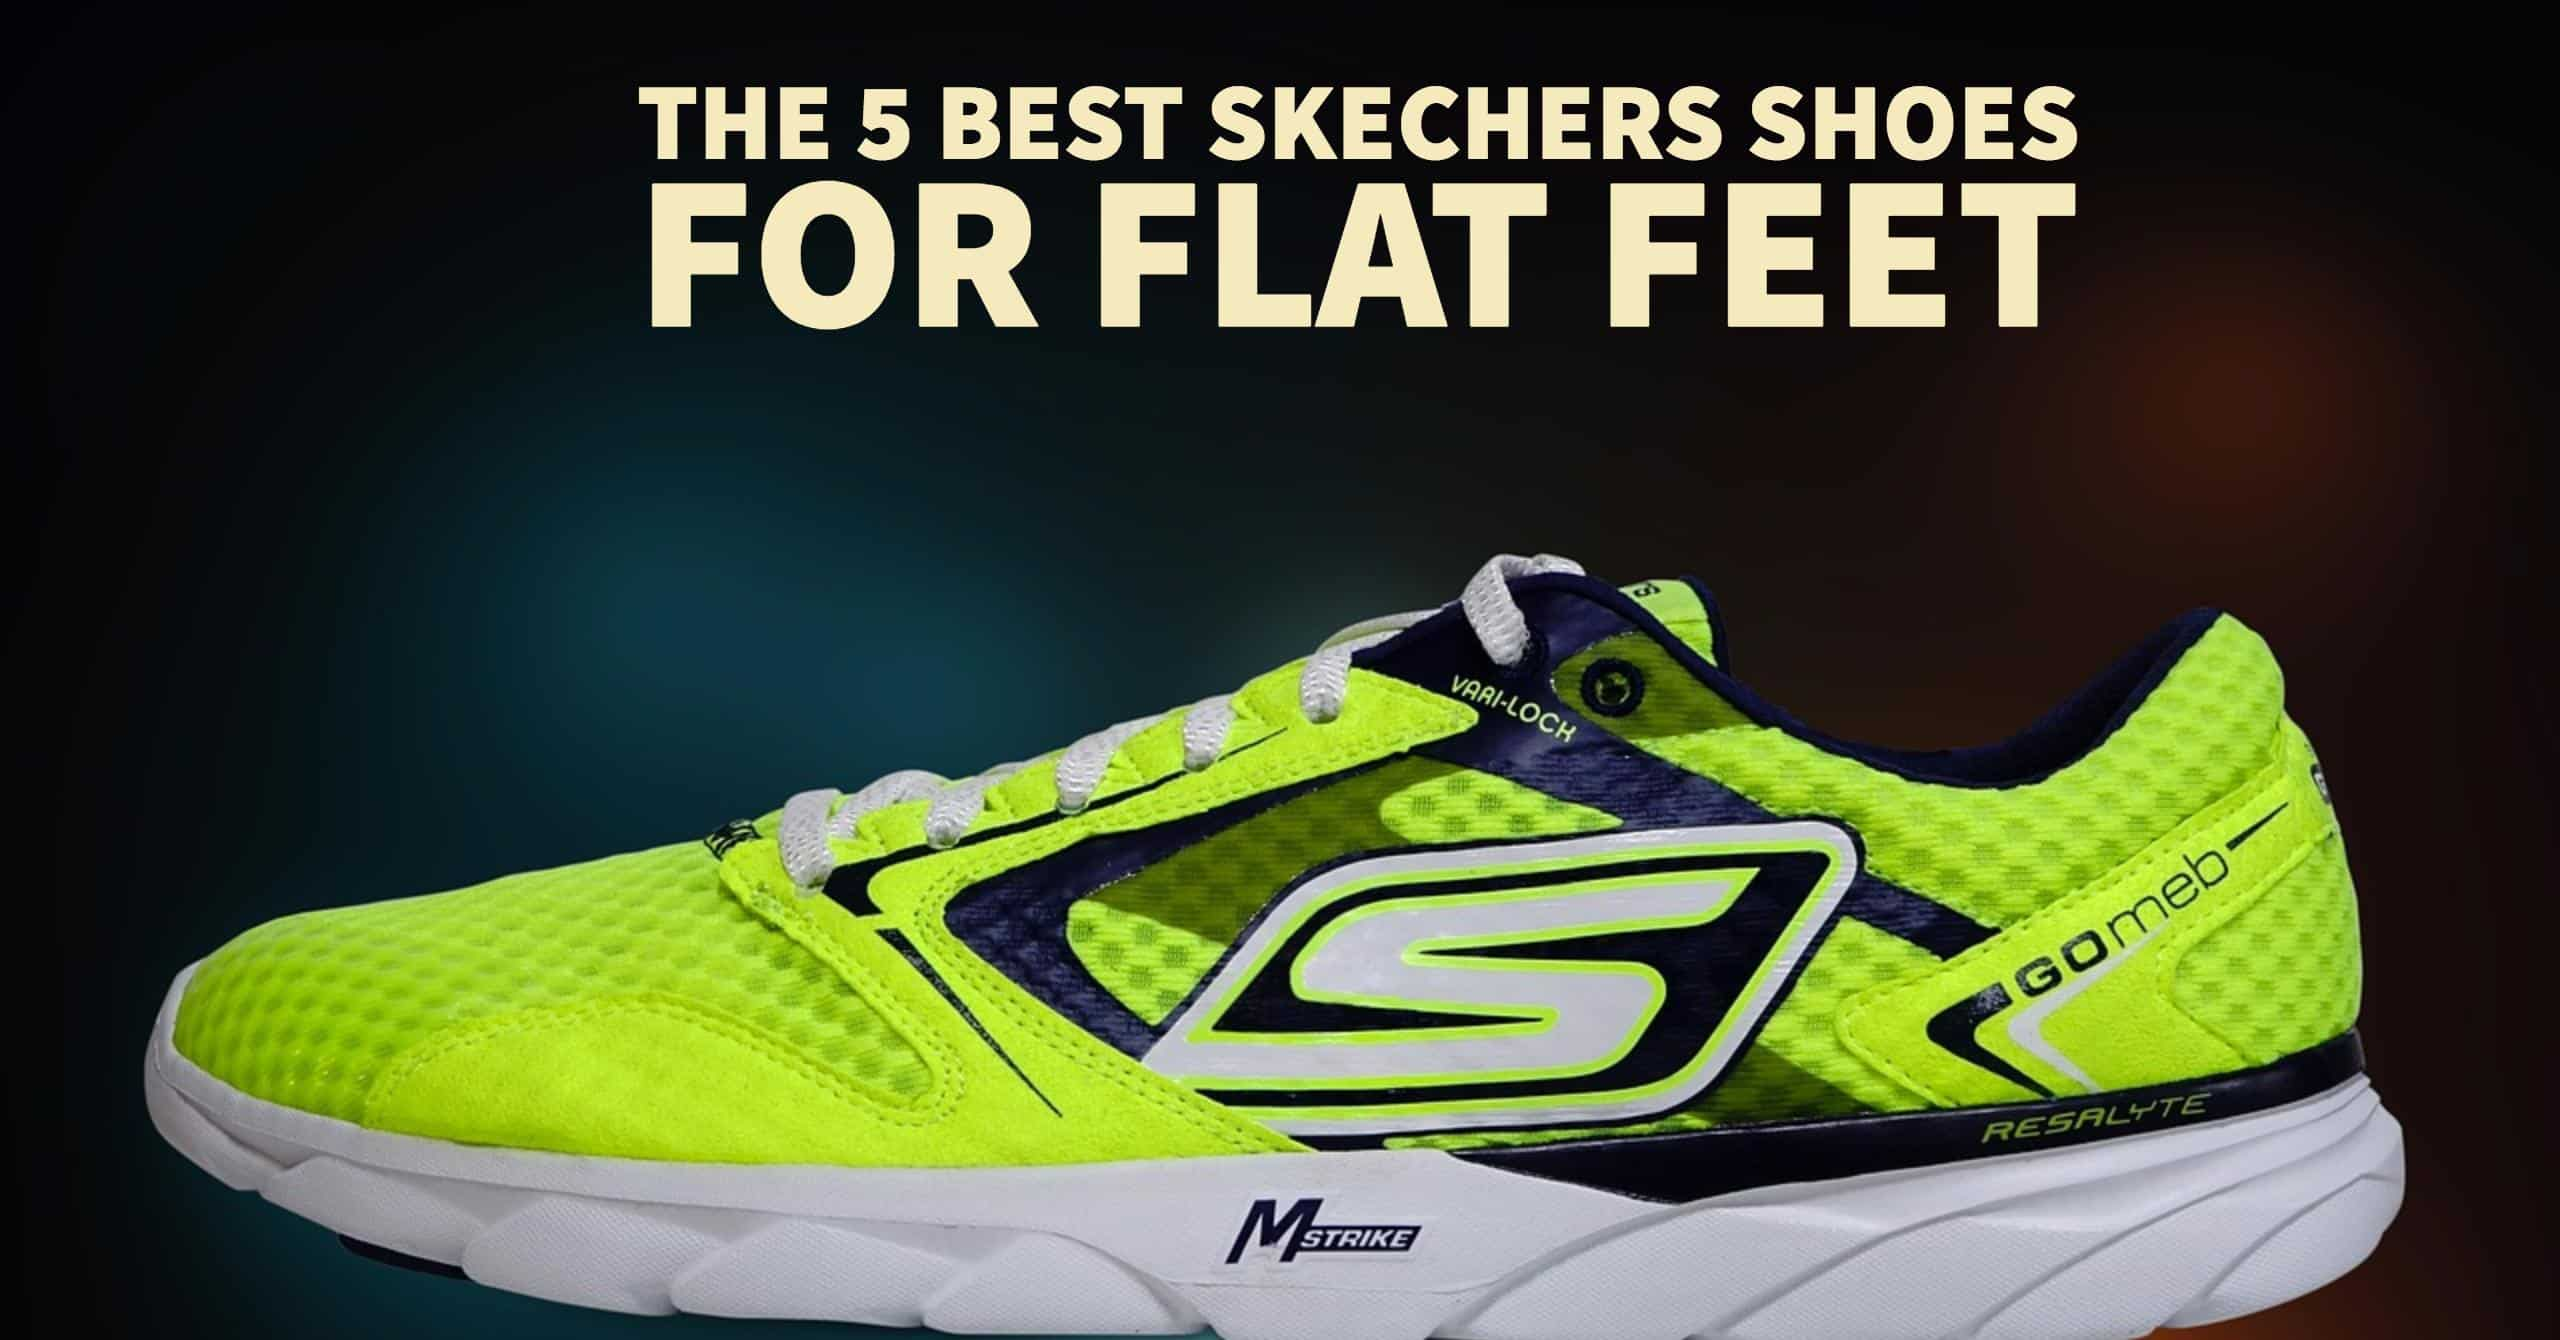 2afc78db09 Skechers have quickly ascended to the conversation of good running shoes.  Here are the 5